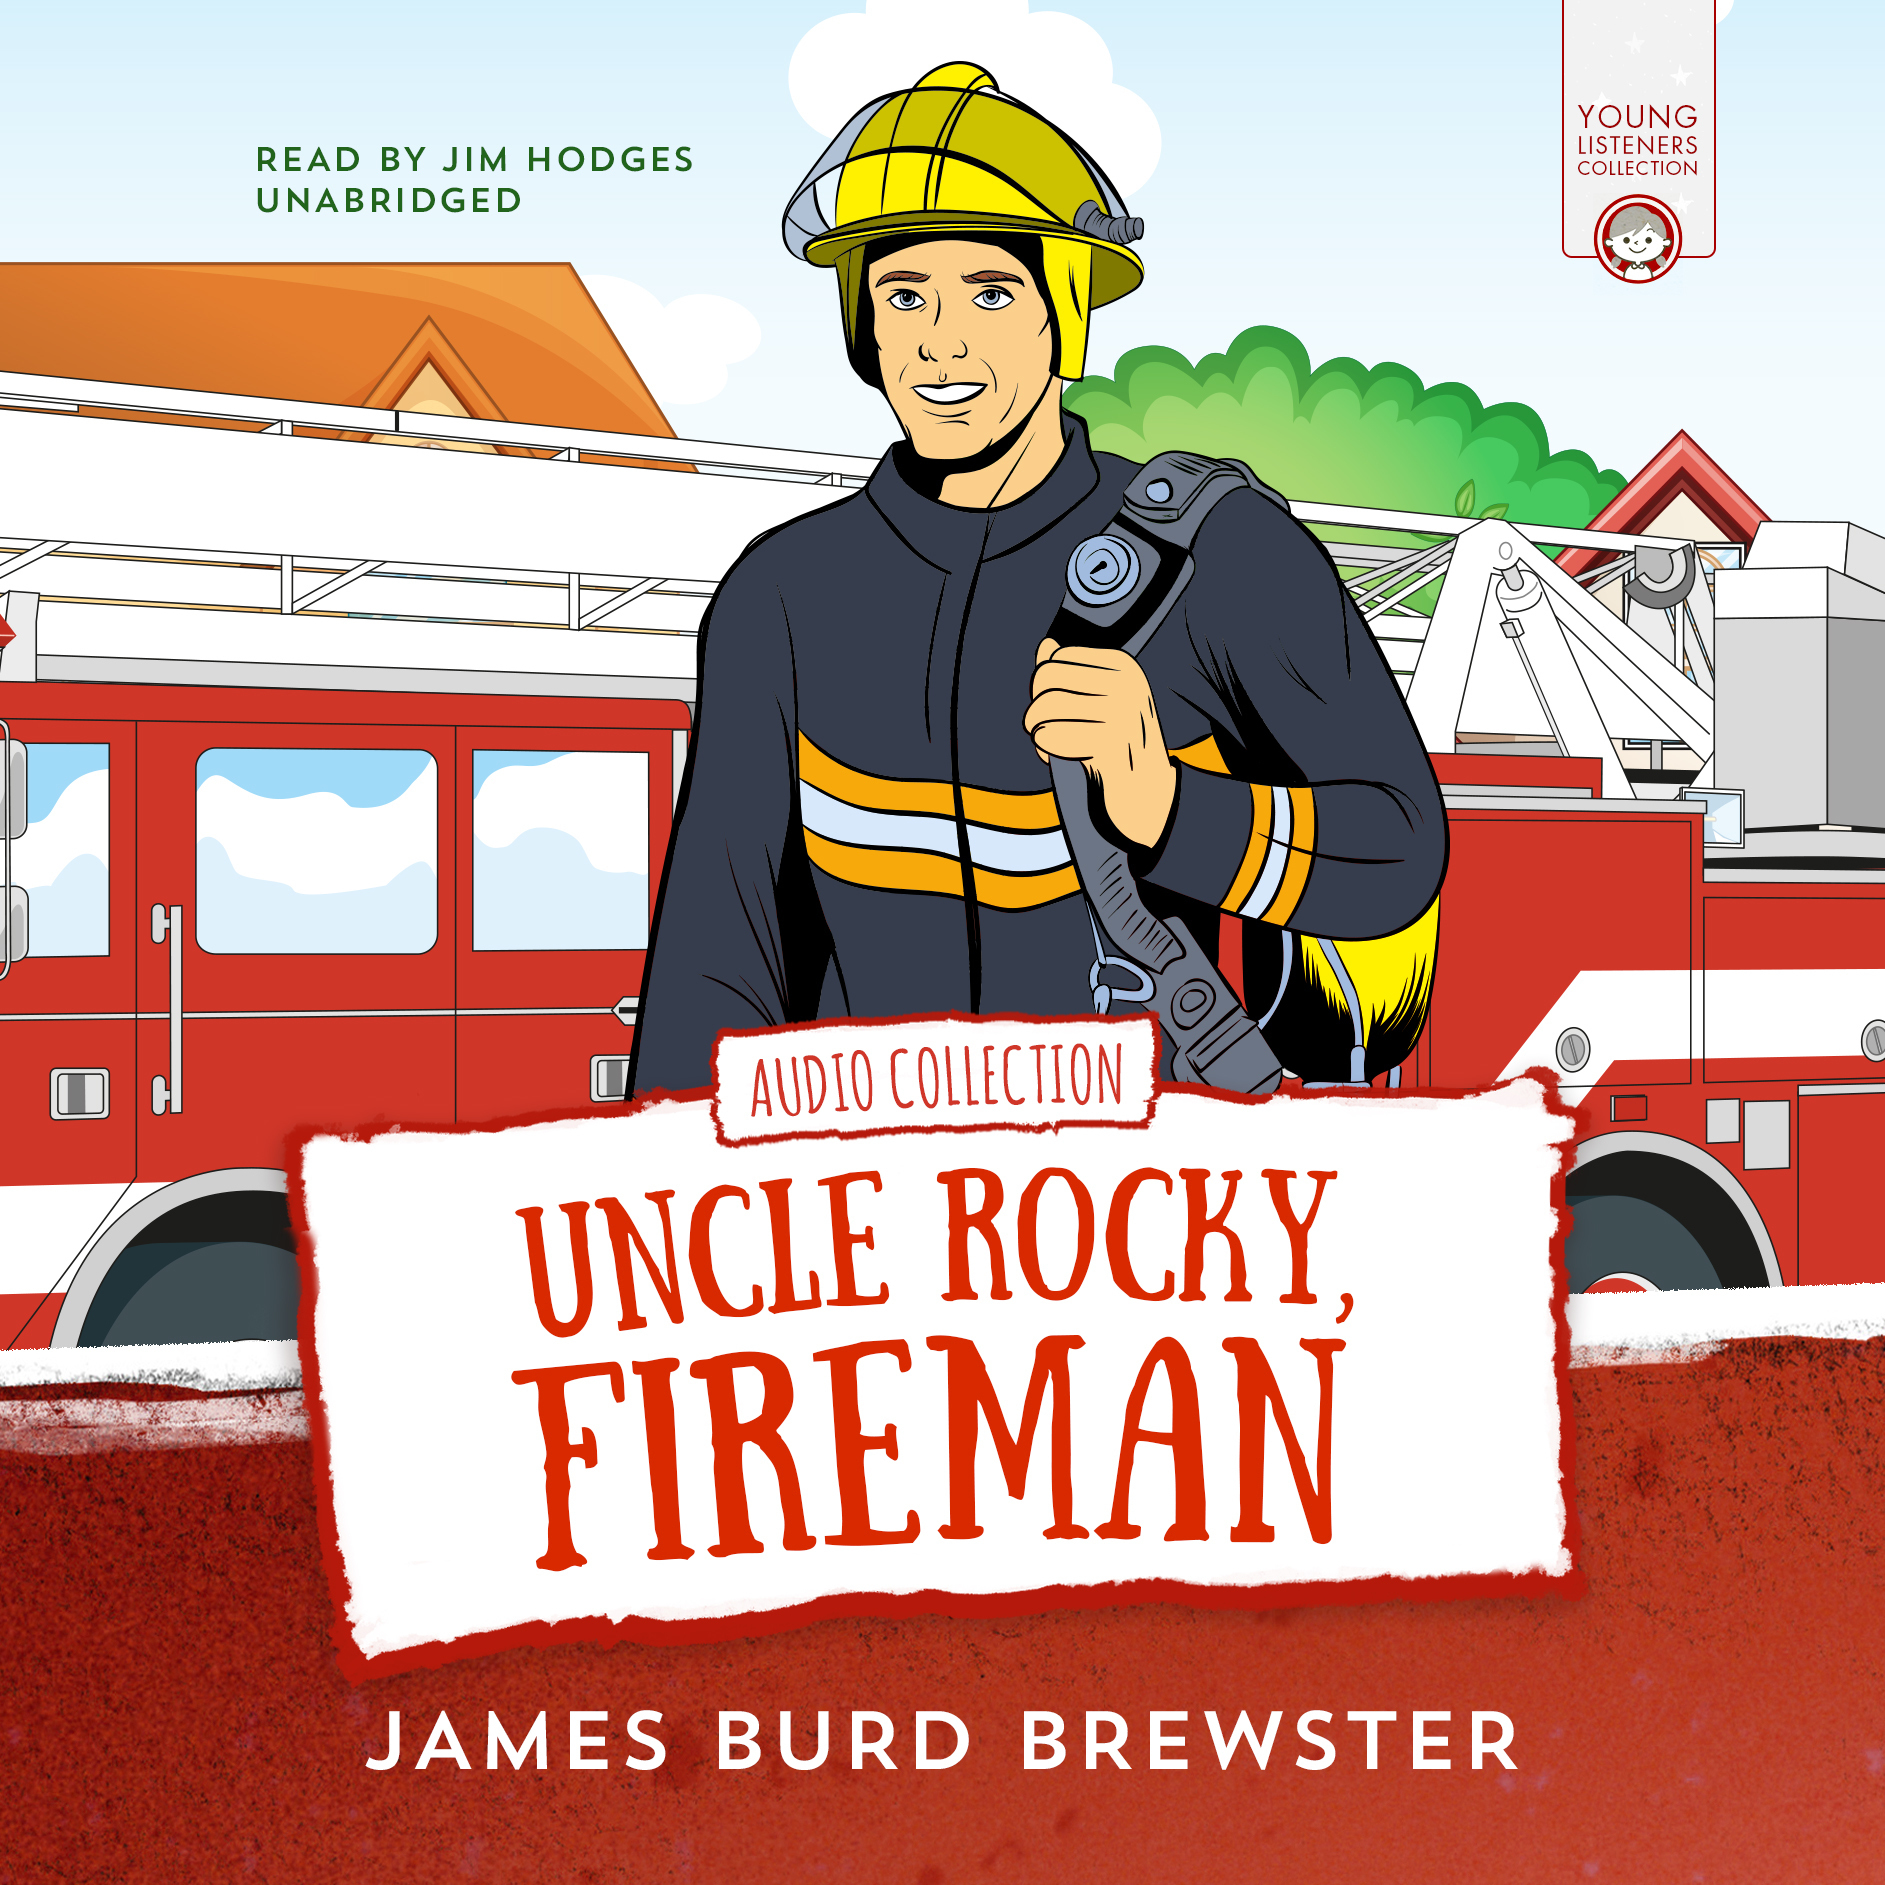 Printable The Adventures of Uncle Rocky, Fireman: Audio Collection Audiobook Cover Art